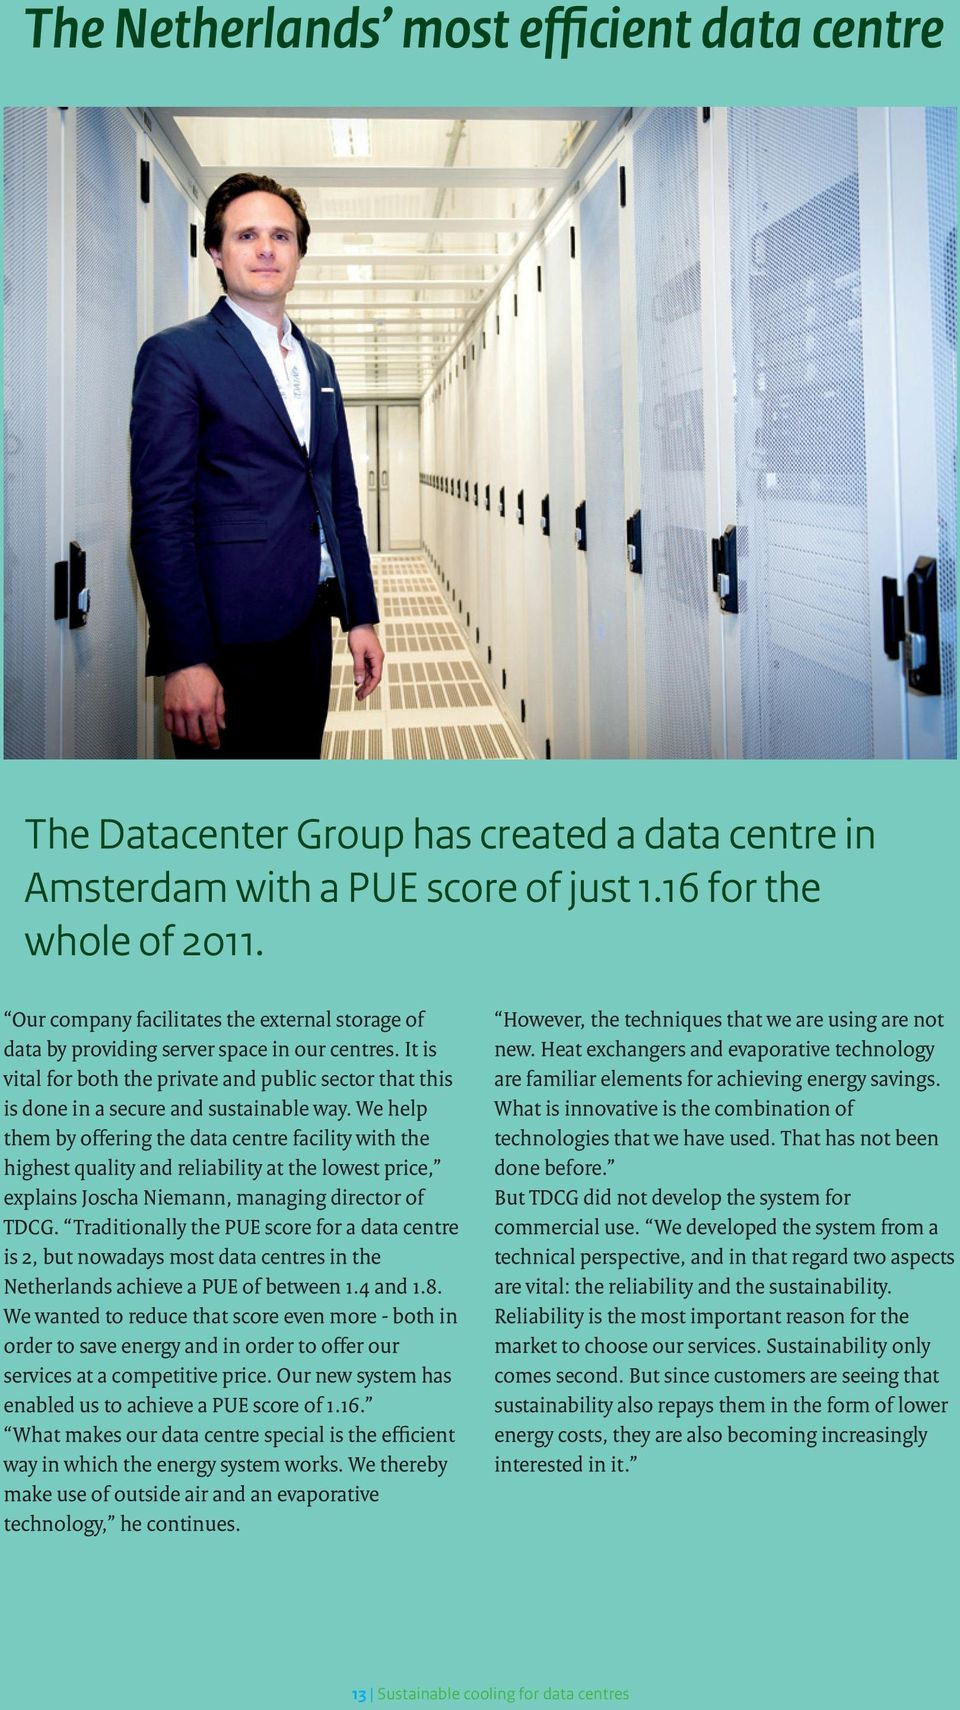 We help them by offering the data centre facility with the highest quality and reliability at the lowest price, explains Joscha Niemann, managing director of TDCG.